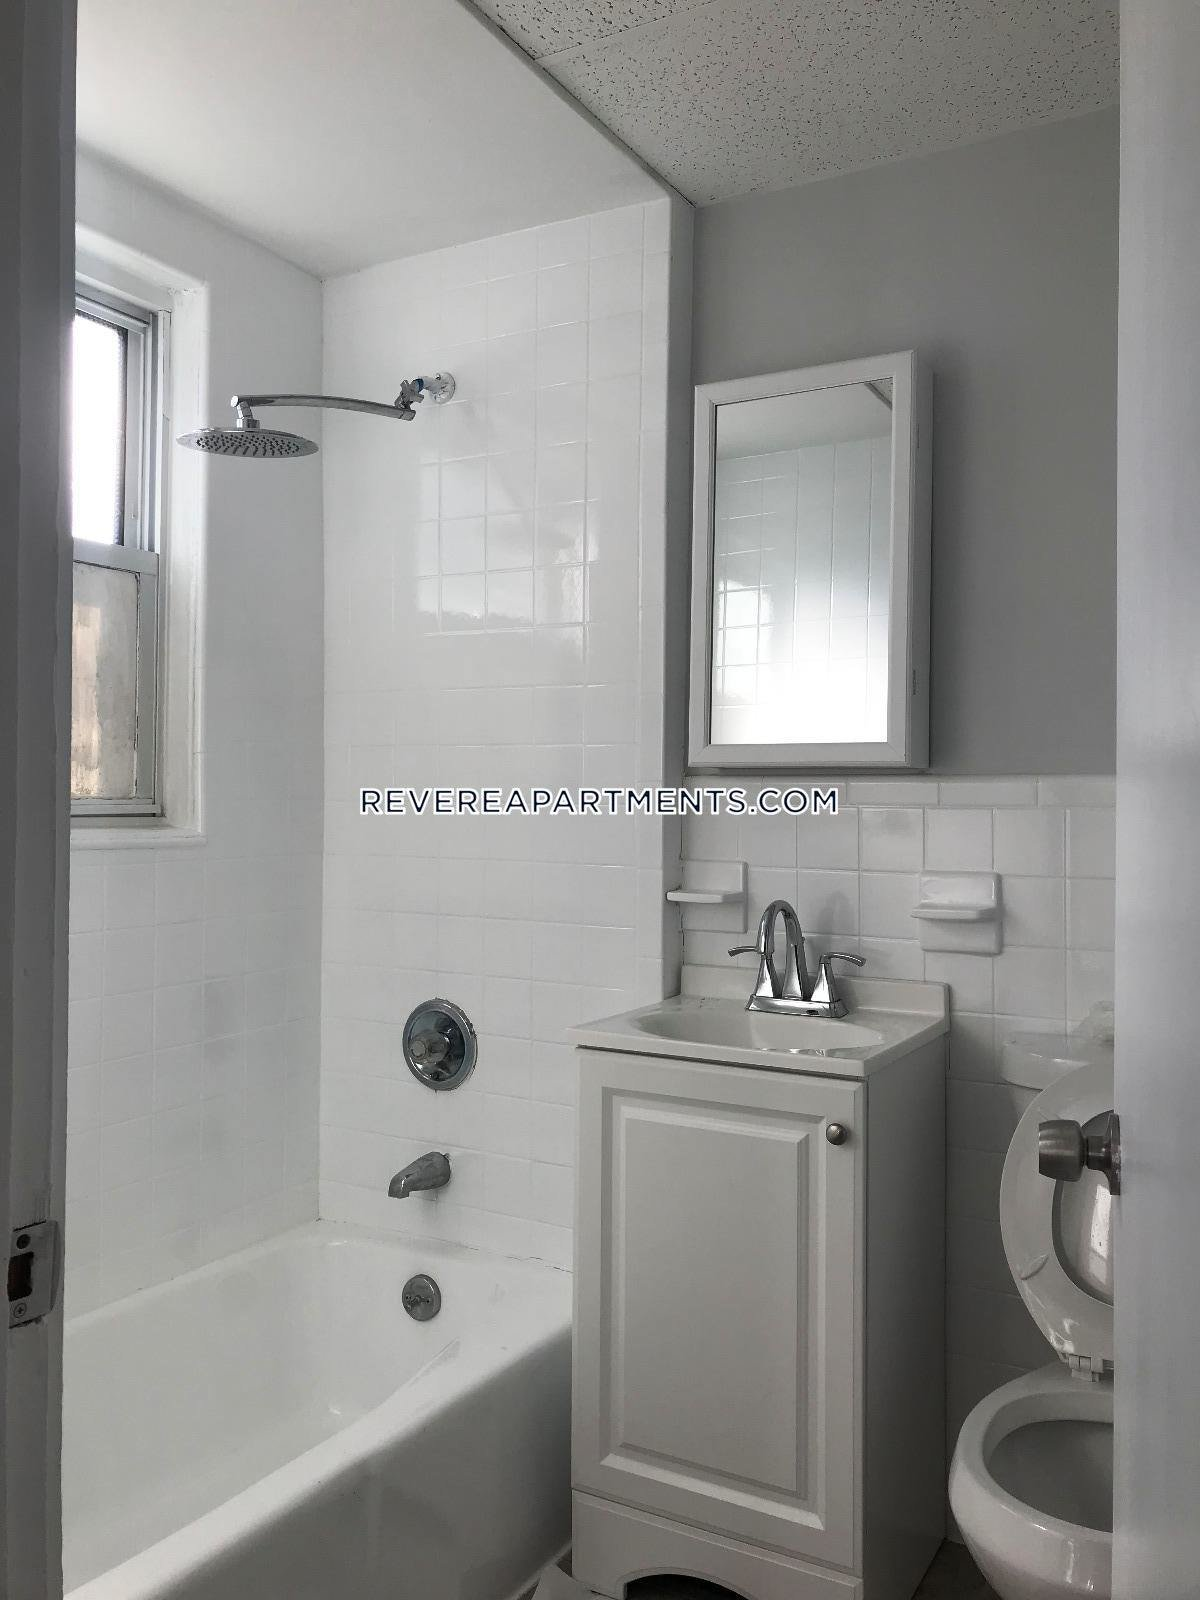 Best Apartments For Rent In Revere Ma Revere Apartment For With Pictures